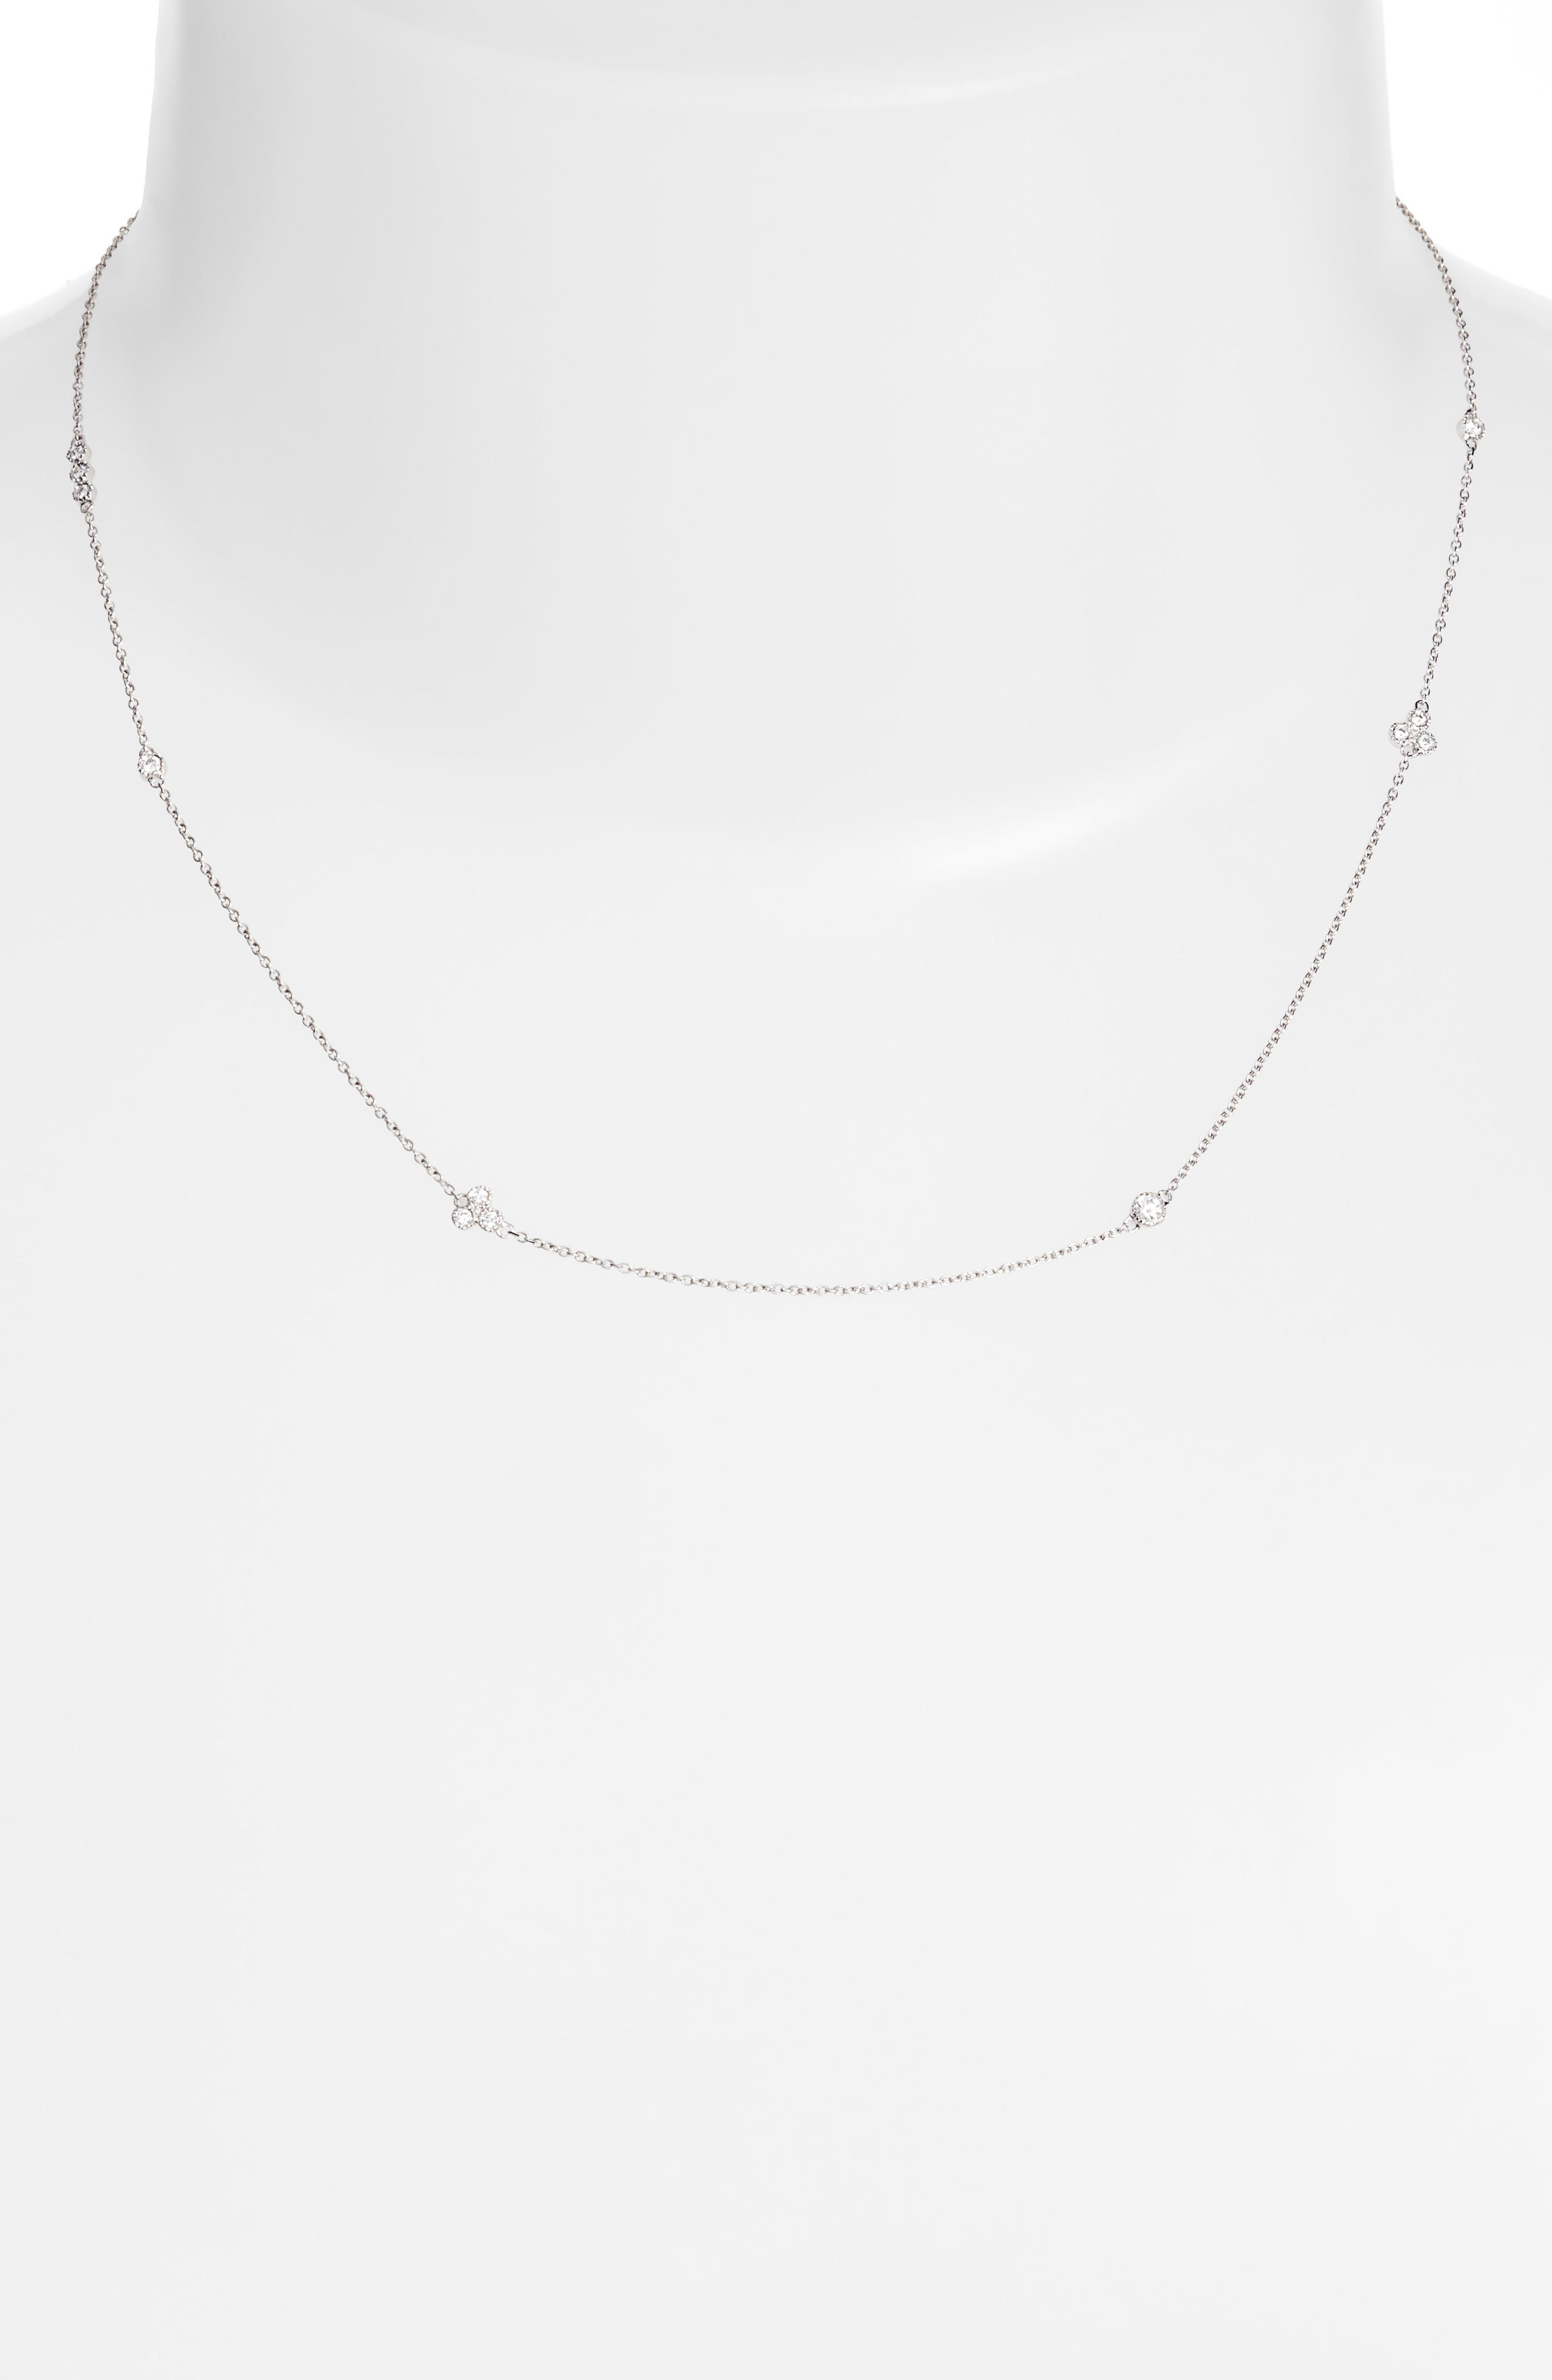 Alternate Image 1 Selected - Bony Levy Harlowe Short Diamond Station Necklace (Nordstrom Exclusive)